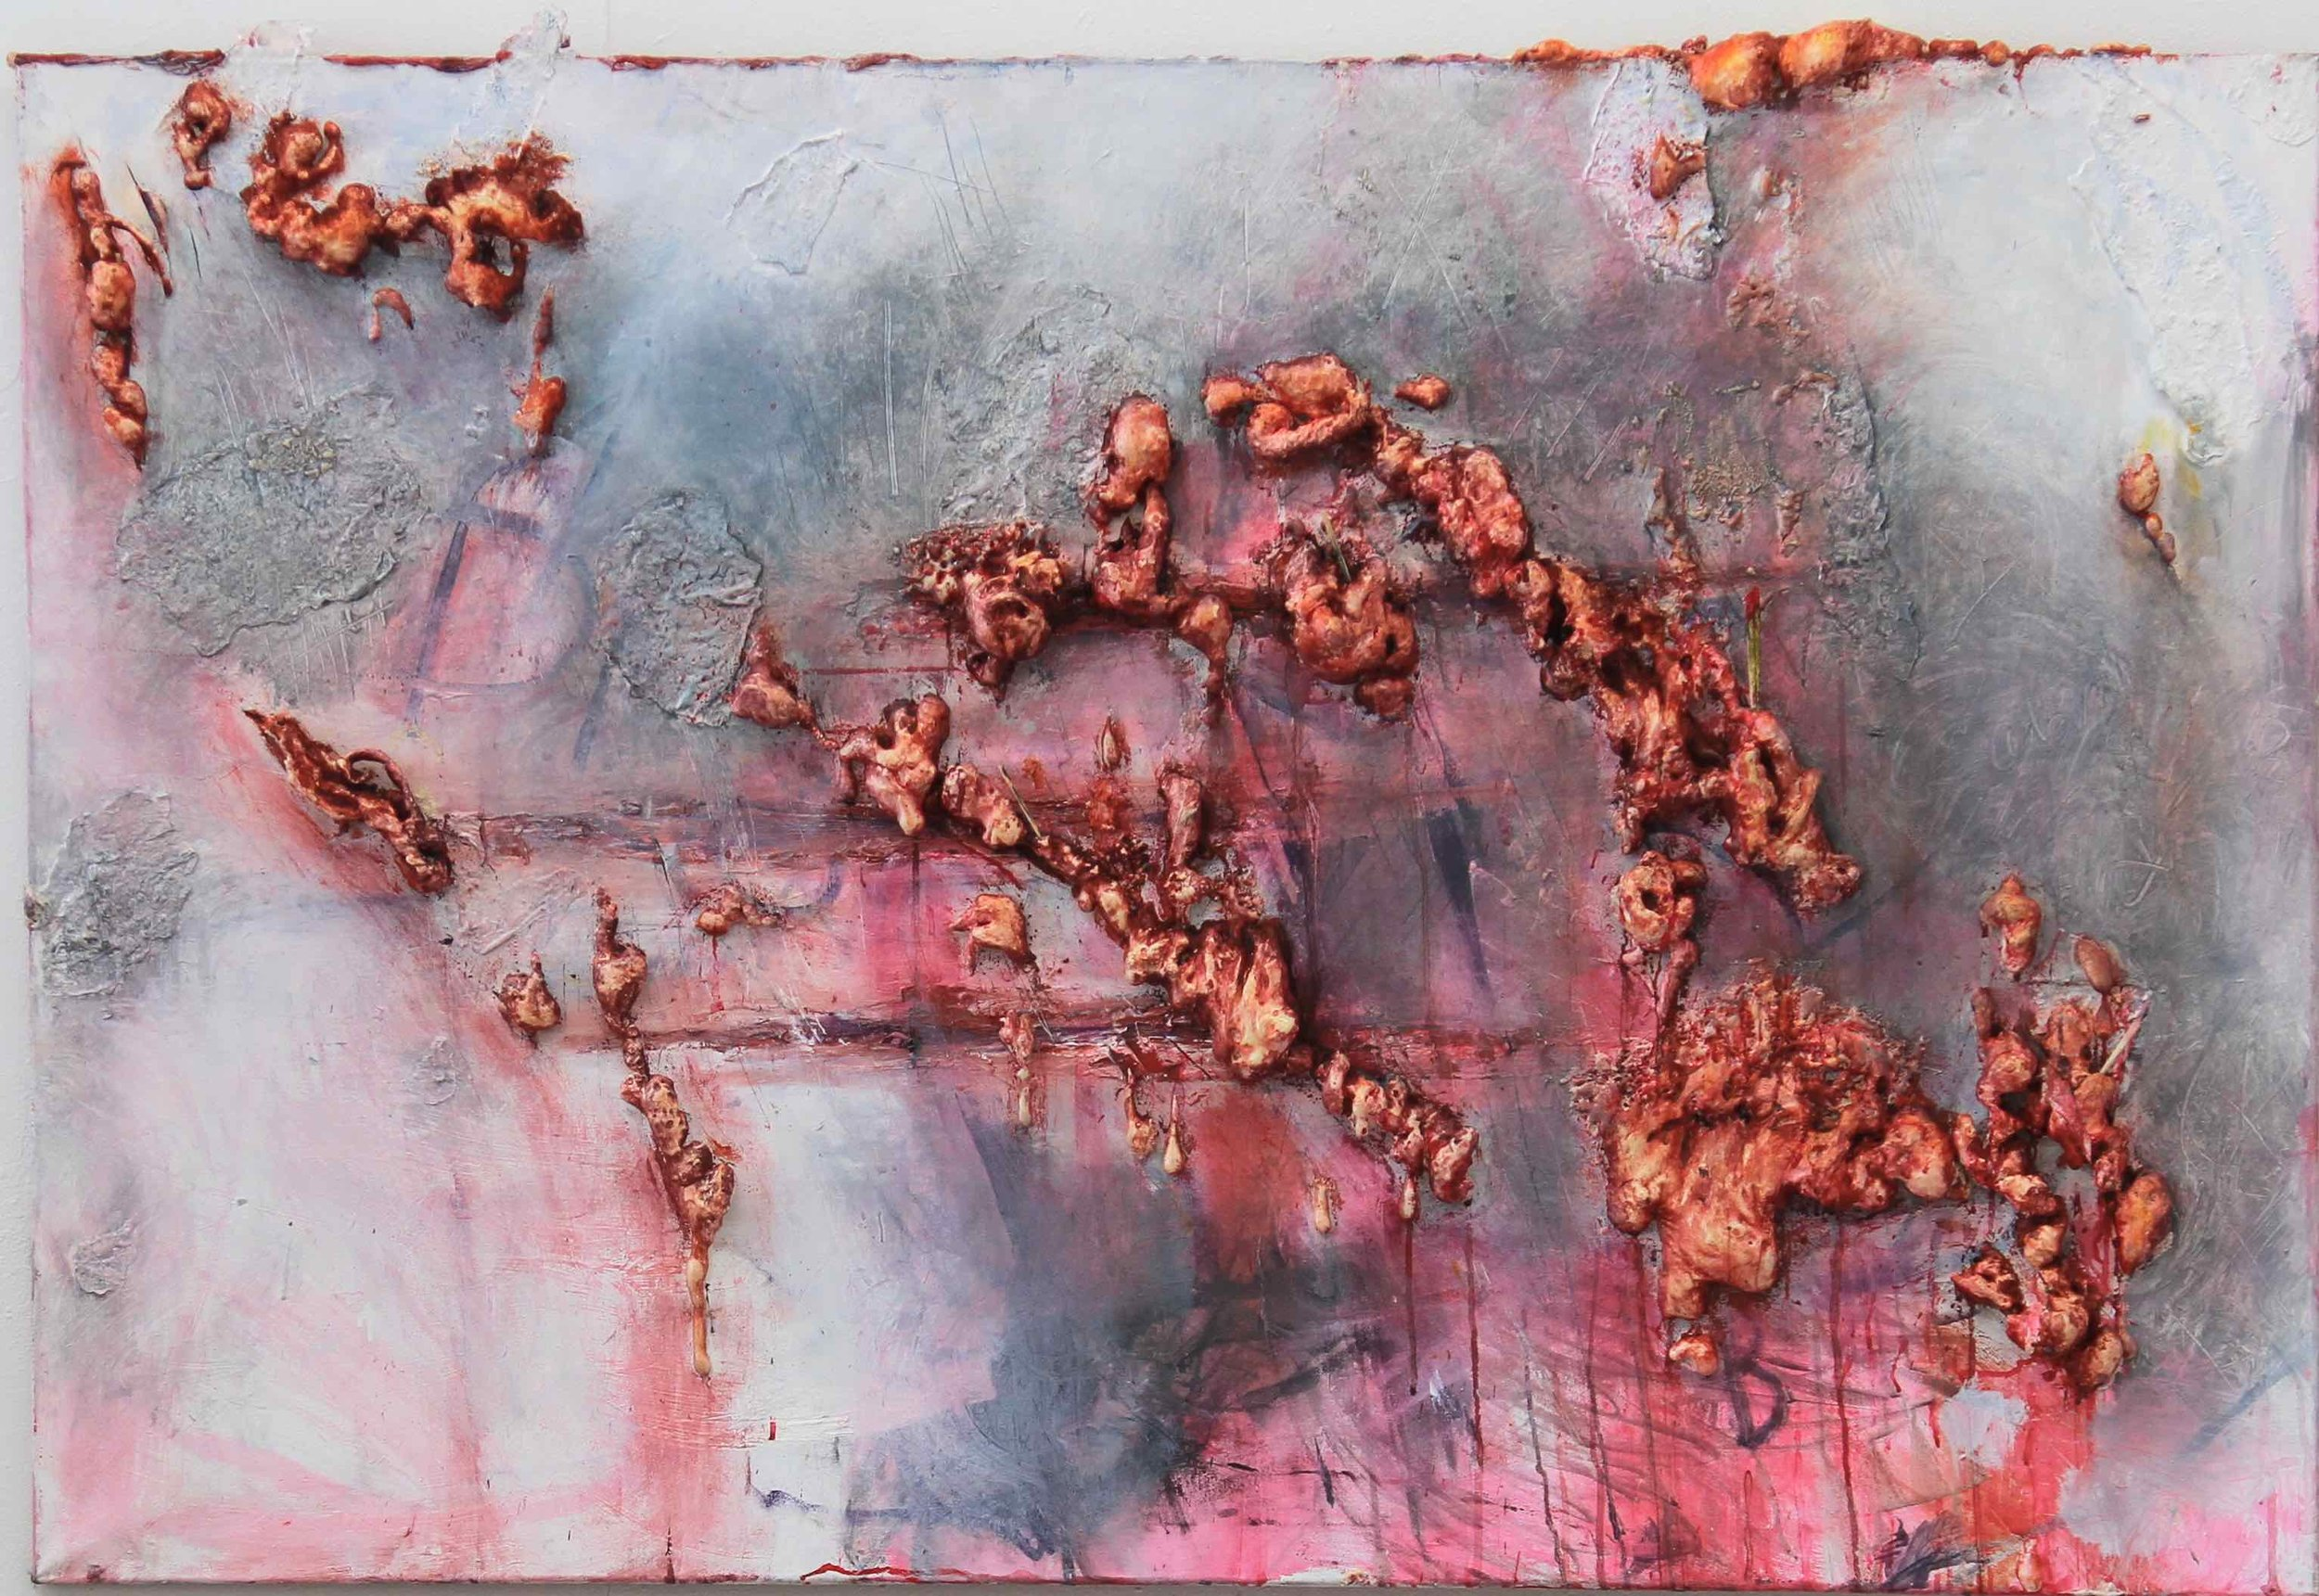 Afterparty / 2012 / acrylic, polyurethane, oil on canvas / 39.37 x 64.96 inches / 100 x 165 cm